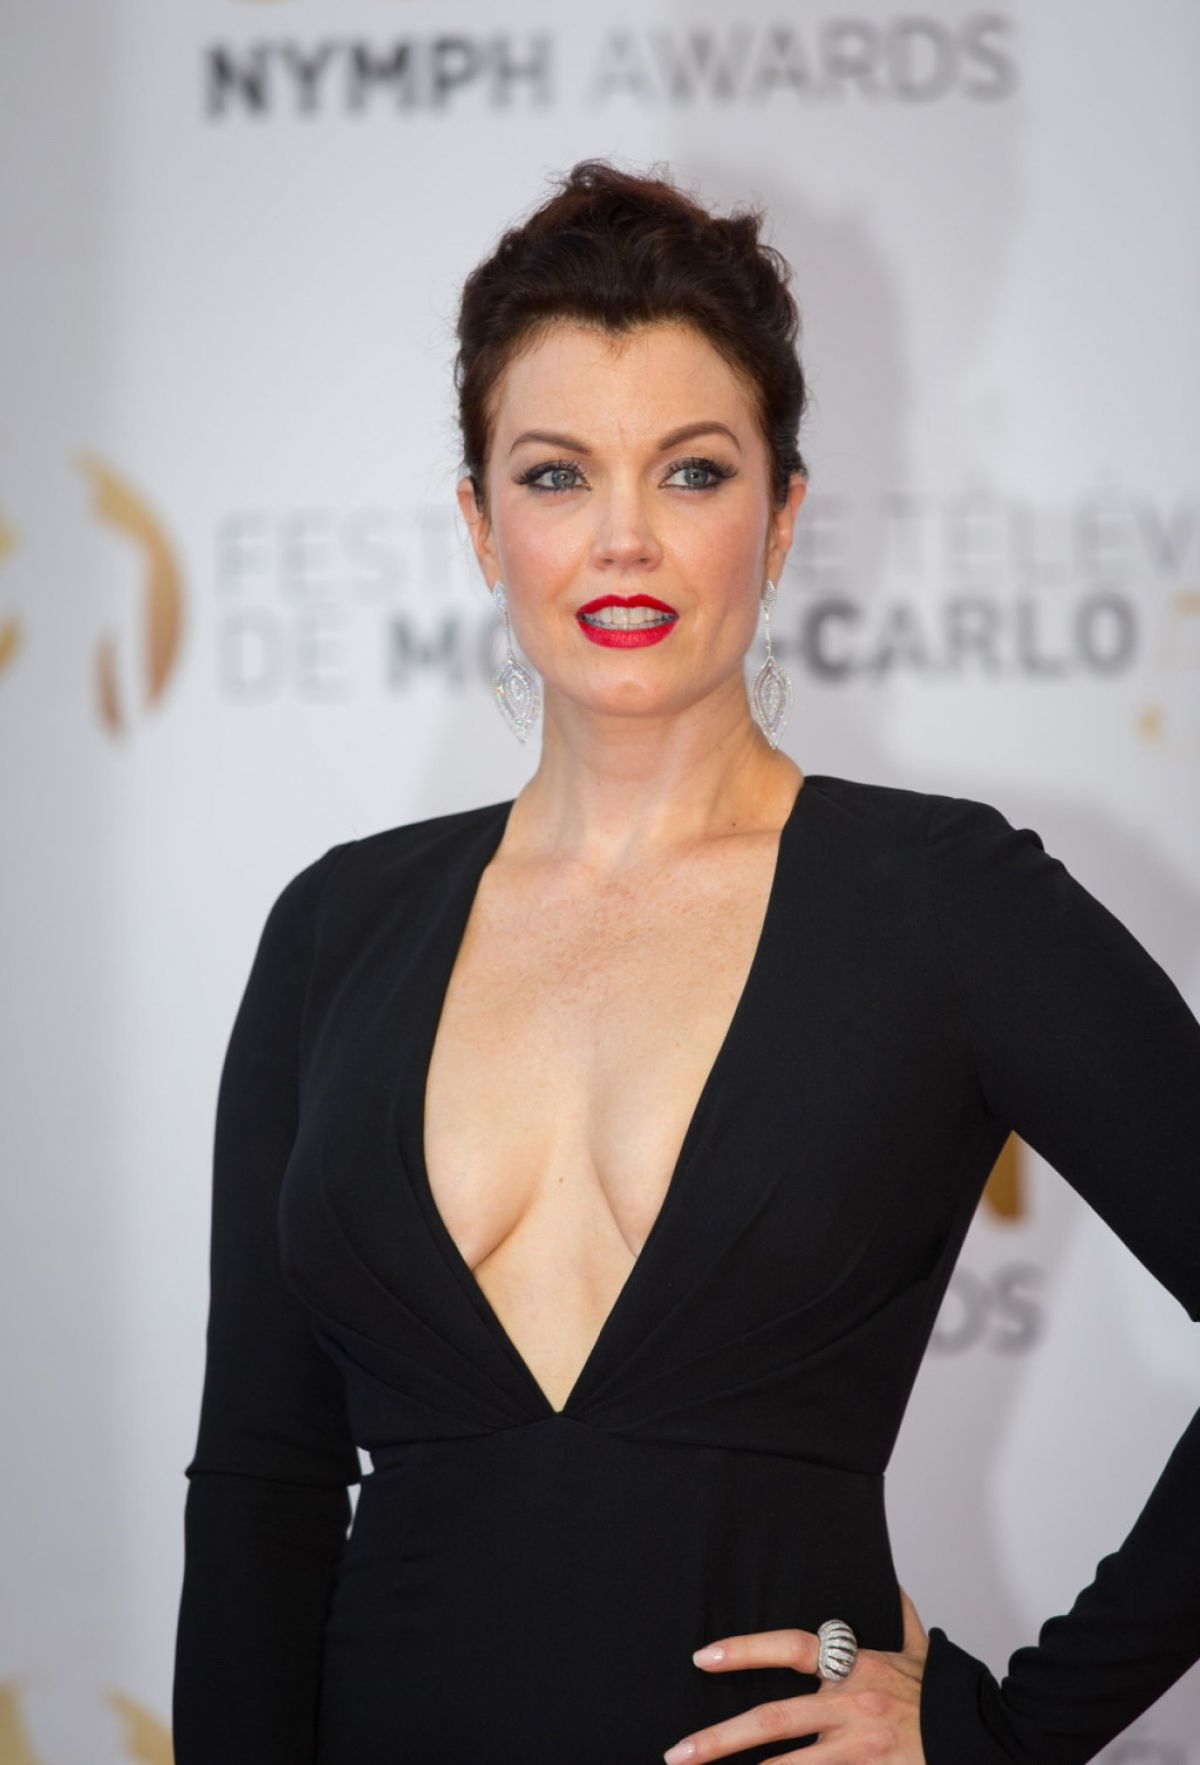 Young Bellamy Young nudes (42 photos), Topless, Sideboobs, Twitter, braless 2019